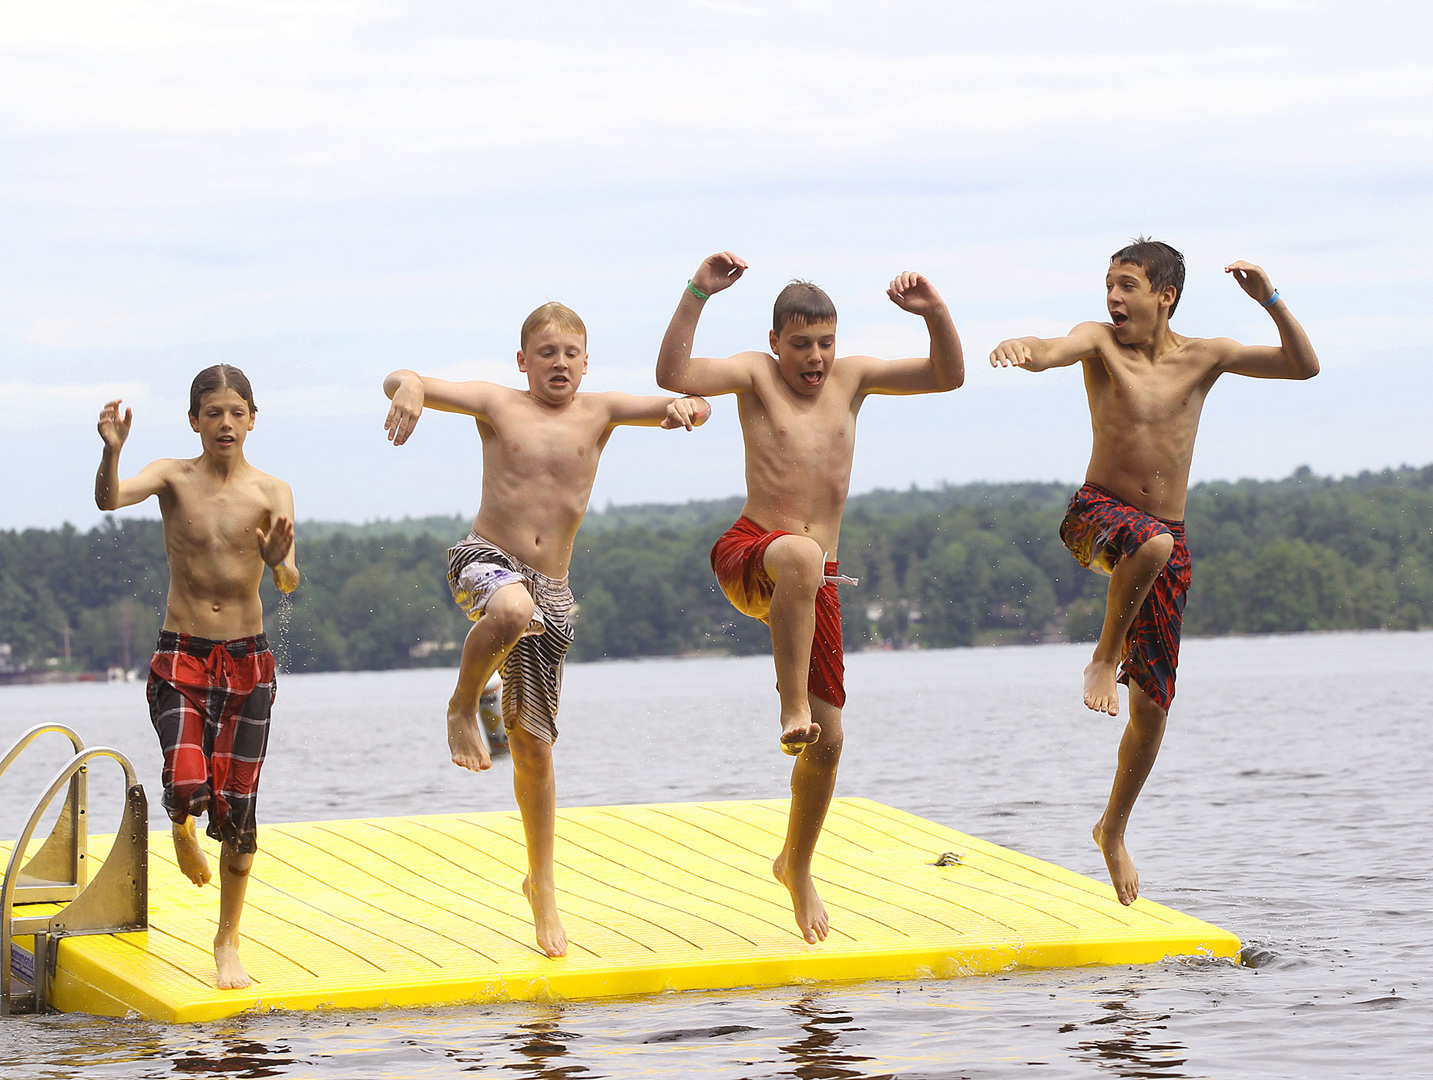 Campers at the YMCA Camp of Maine dive into a lake for a swim.